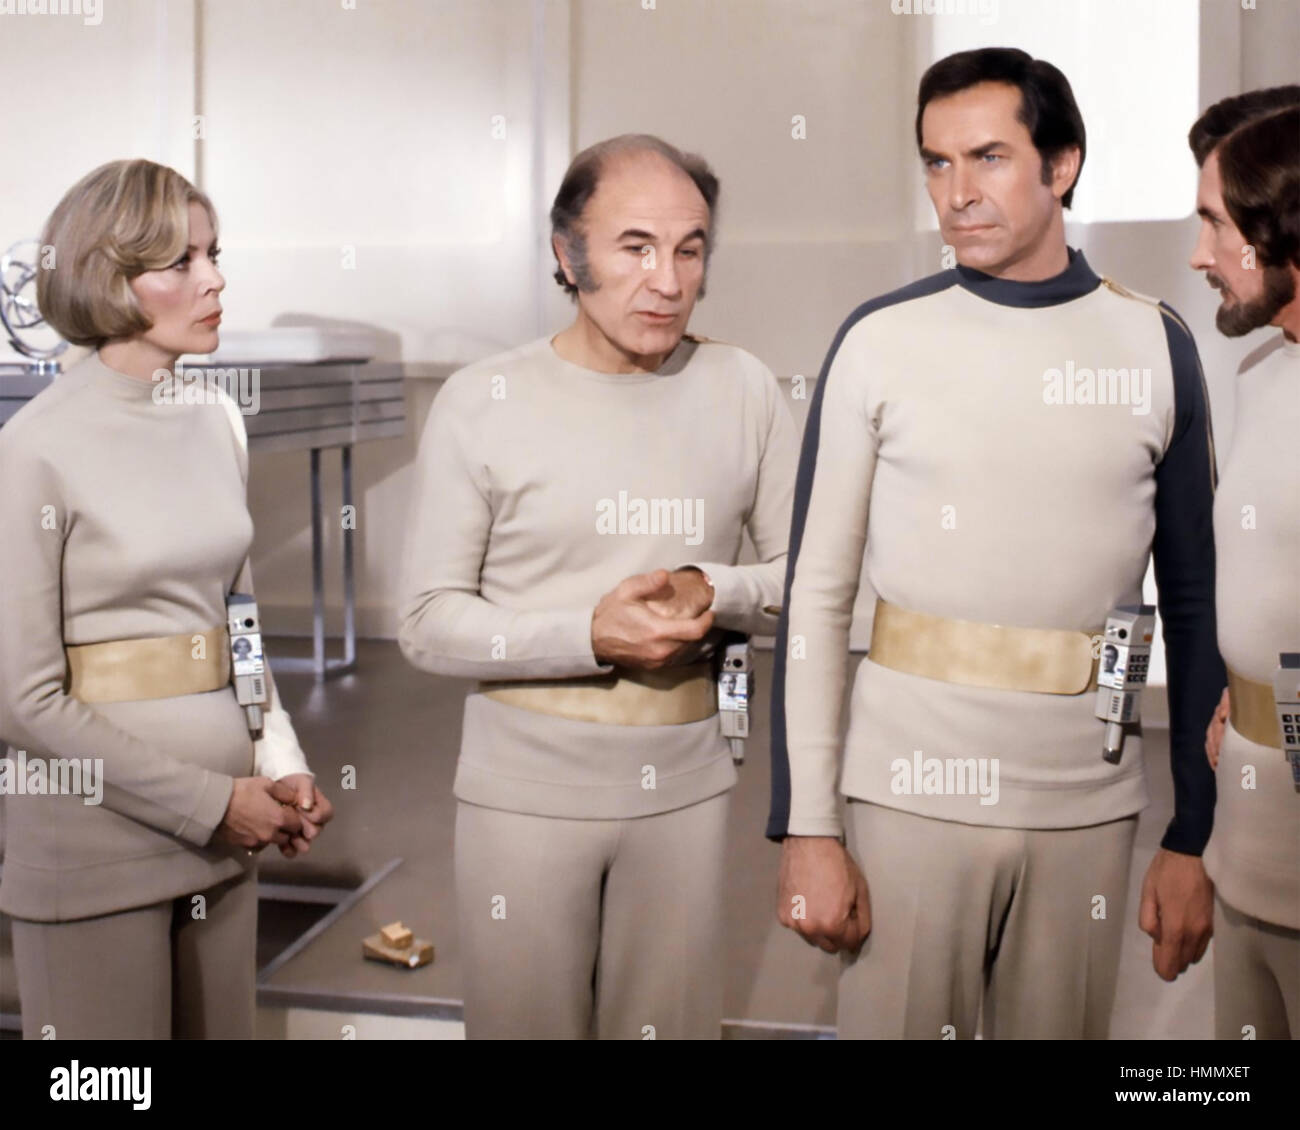 SPACE 1999 ITV/ITC sci-fi television series 1975-1977 with from left: Barbara Bain, Barry Morse, Martin Landau - Stock Image